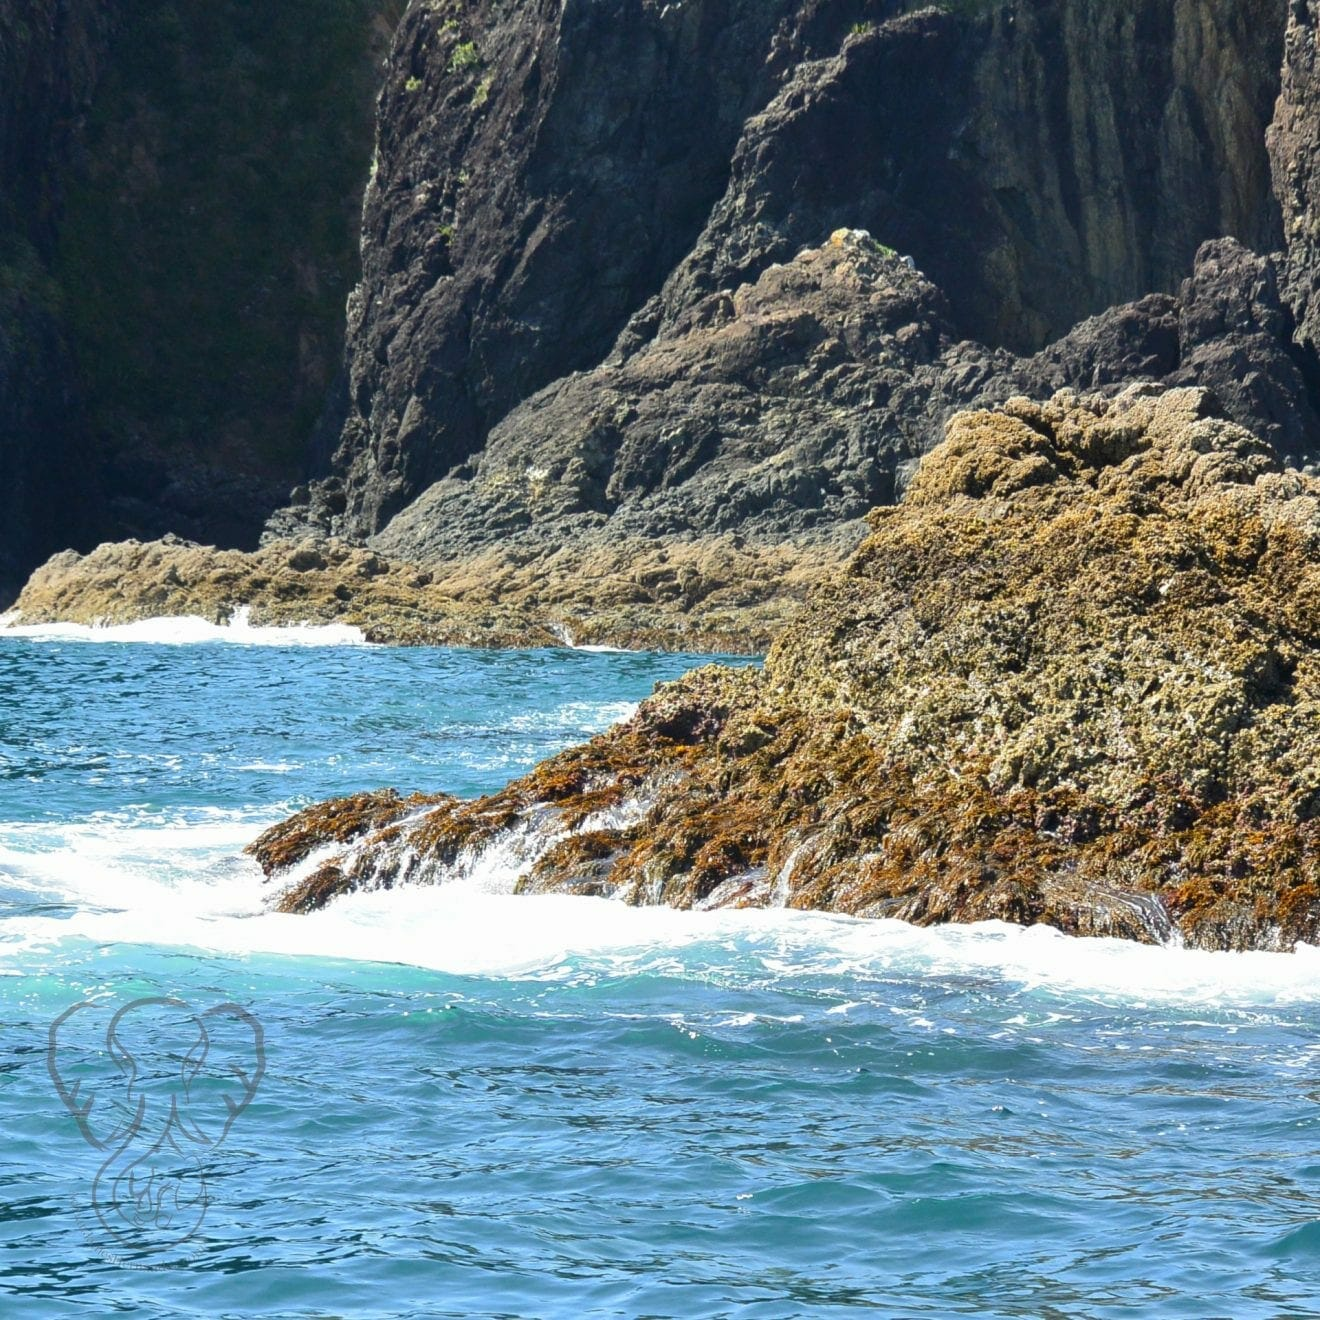 View of a small rocky island in the Bay of Islands, New Zealand (Miranda Hernandez)